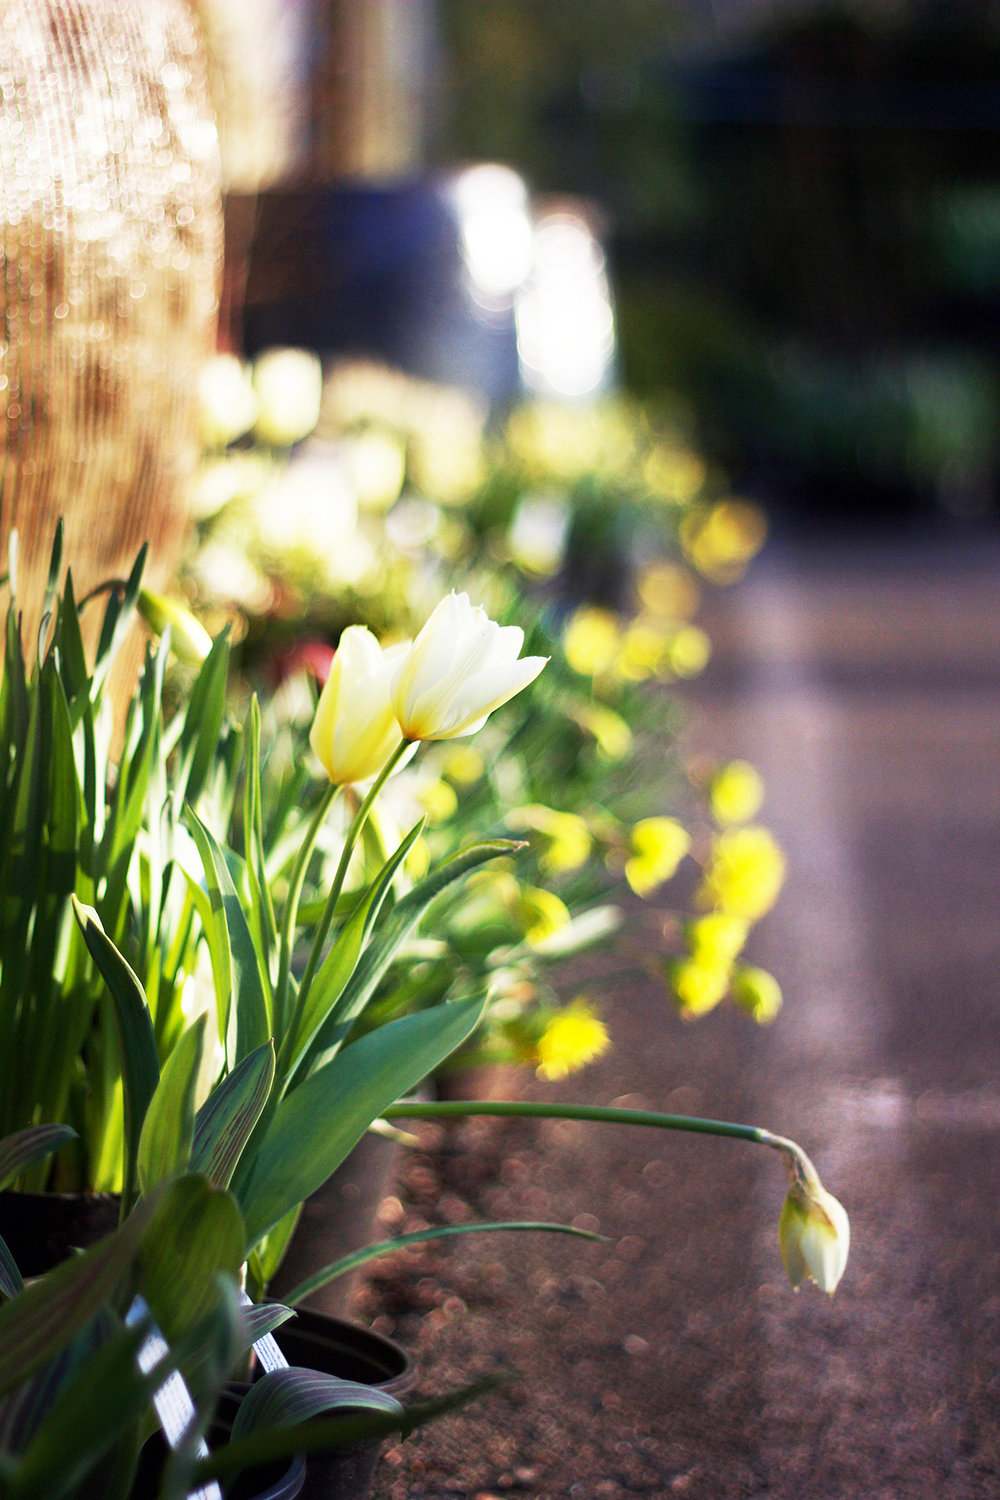 Beautiful Grounds - and discover what beautiful plants and fun decor awaits you!From spring flowering bulbs to trees, shrubs and seeds, whatever your interests are, we have something for everybody!